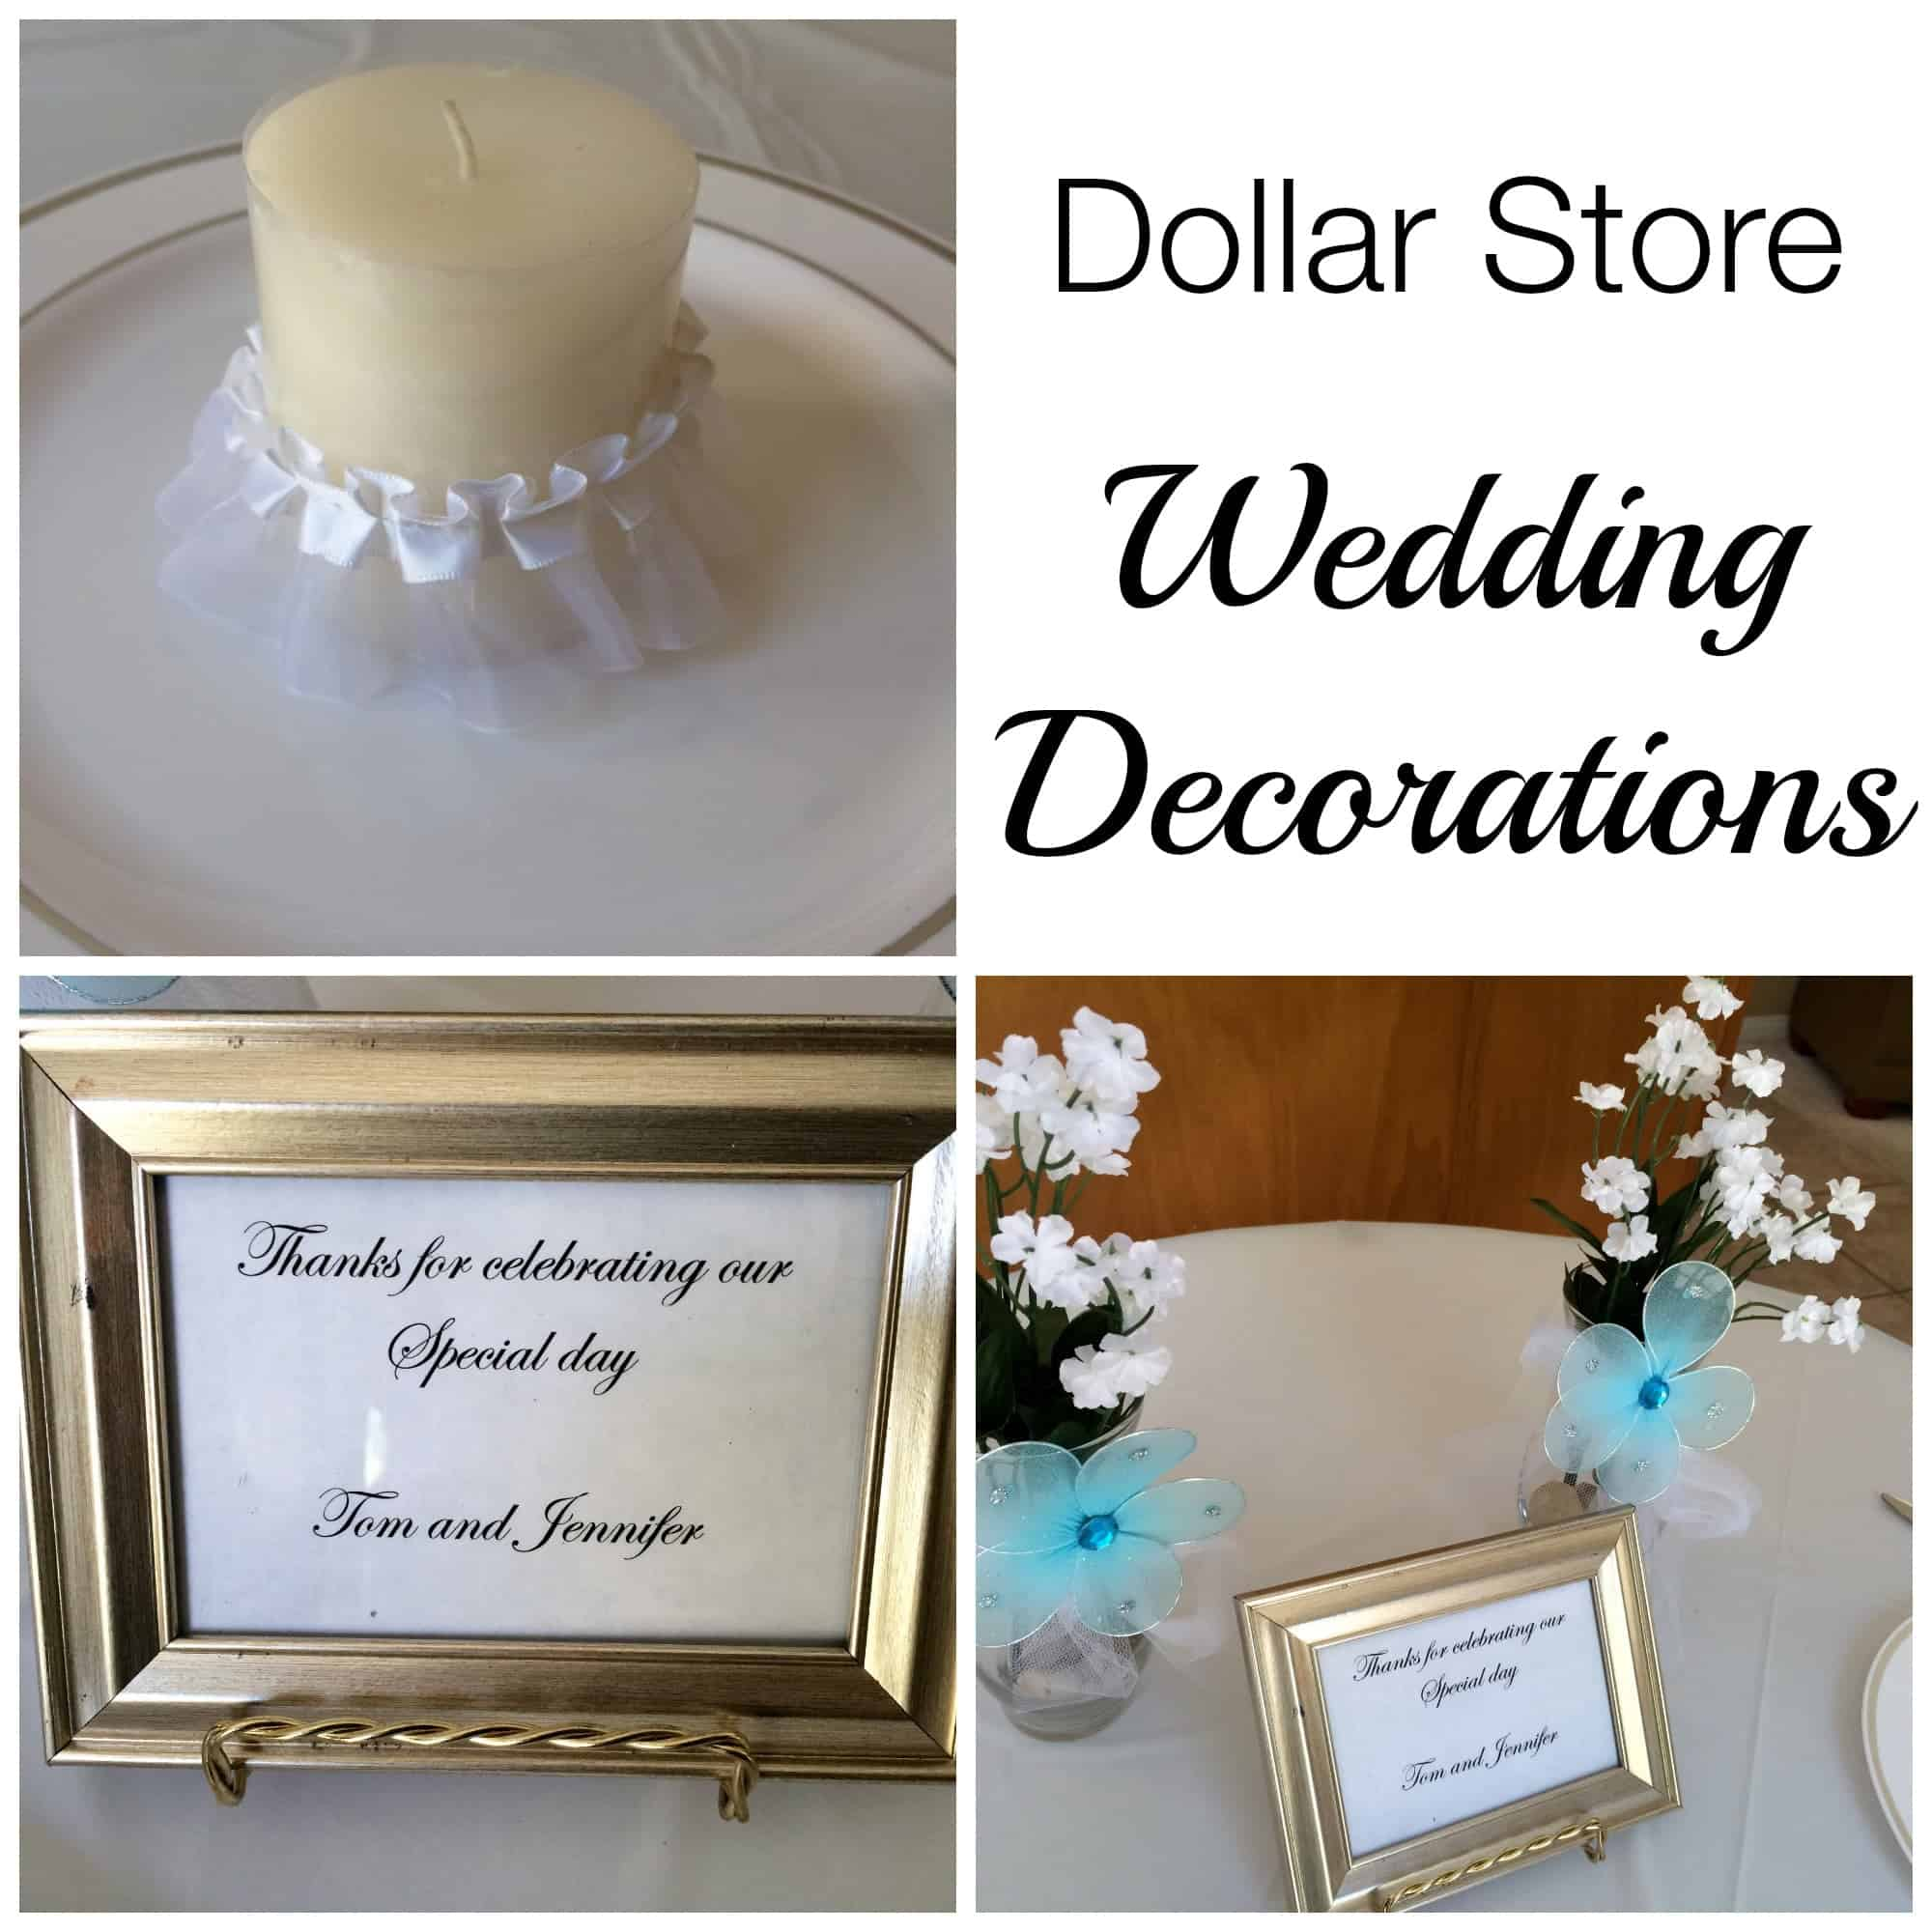 Best Dollar Store Wedding Decorations This Month